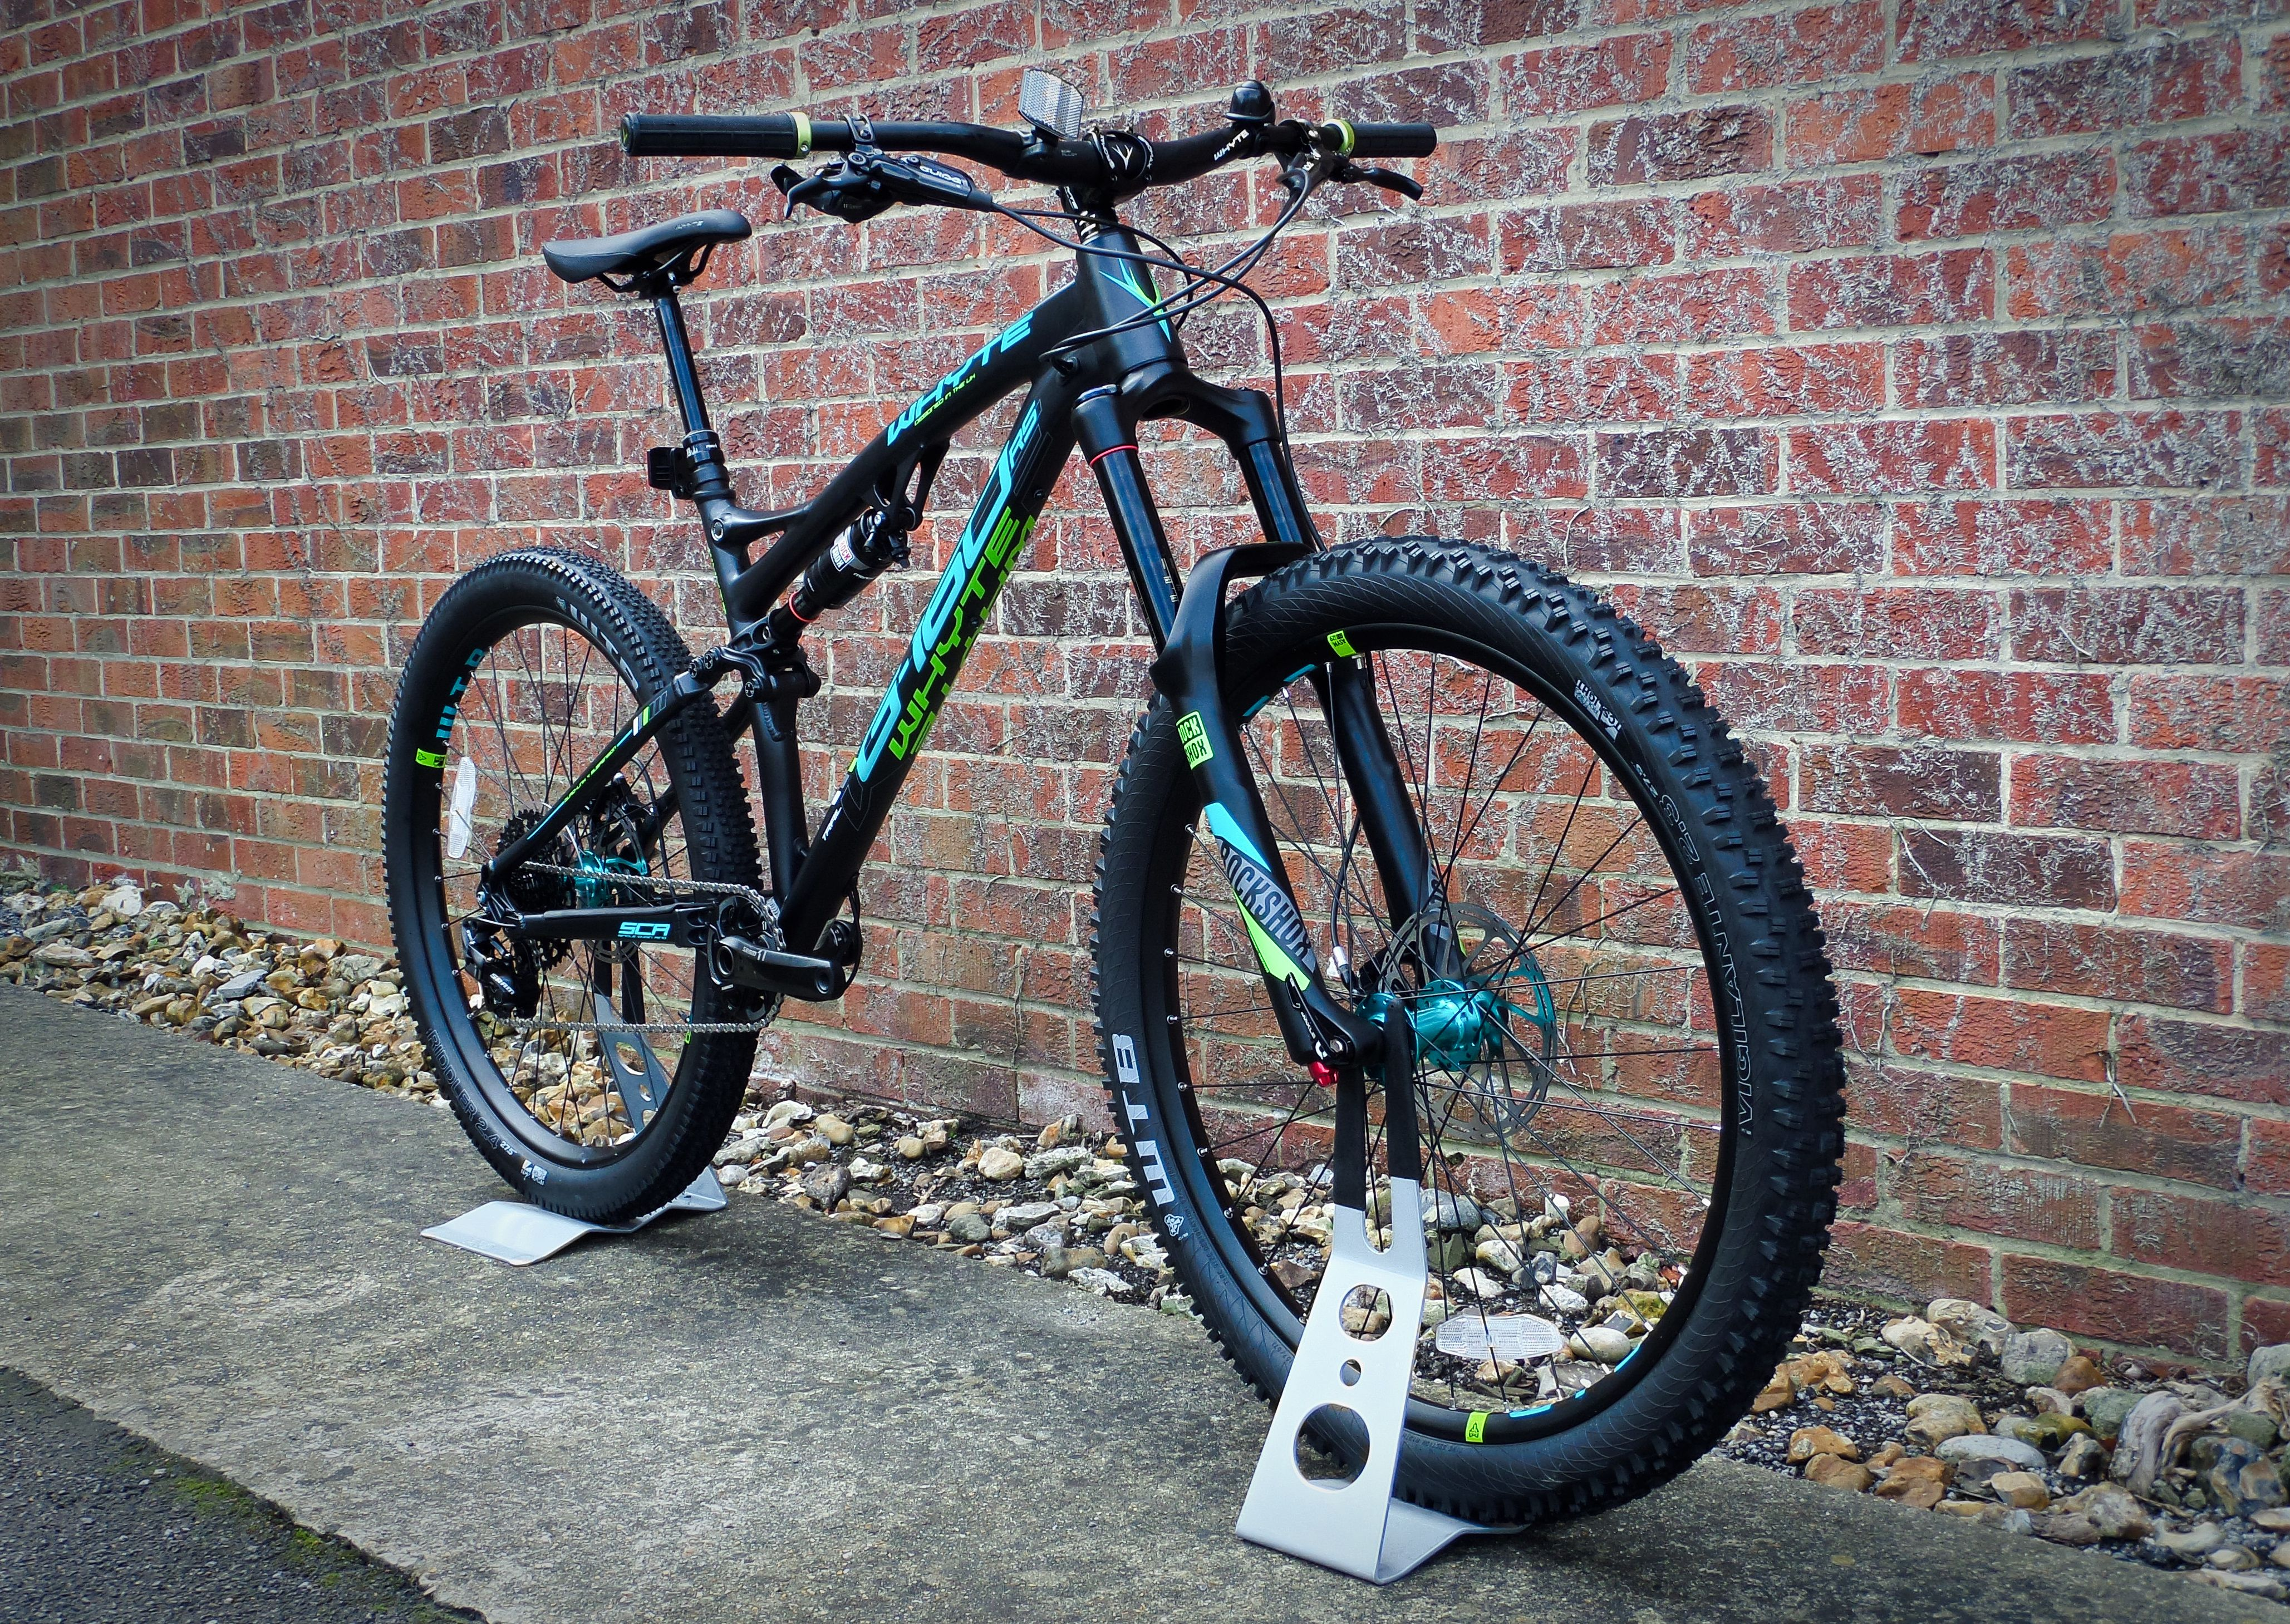 The G 160 Rs Features The Very Latest Whyte Thinking On Geometry